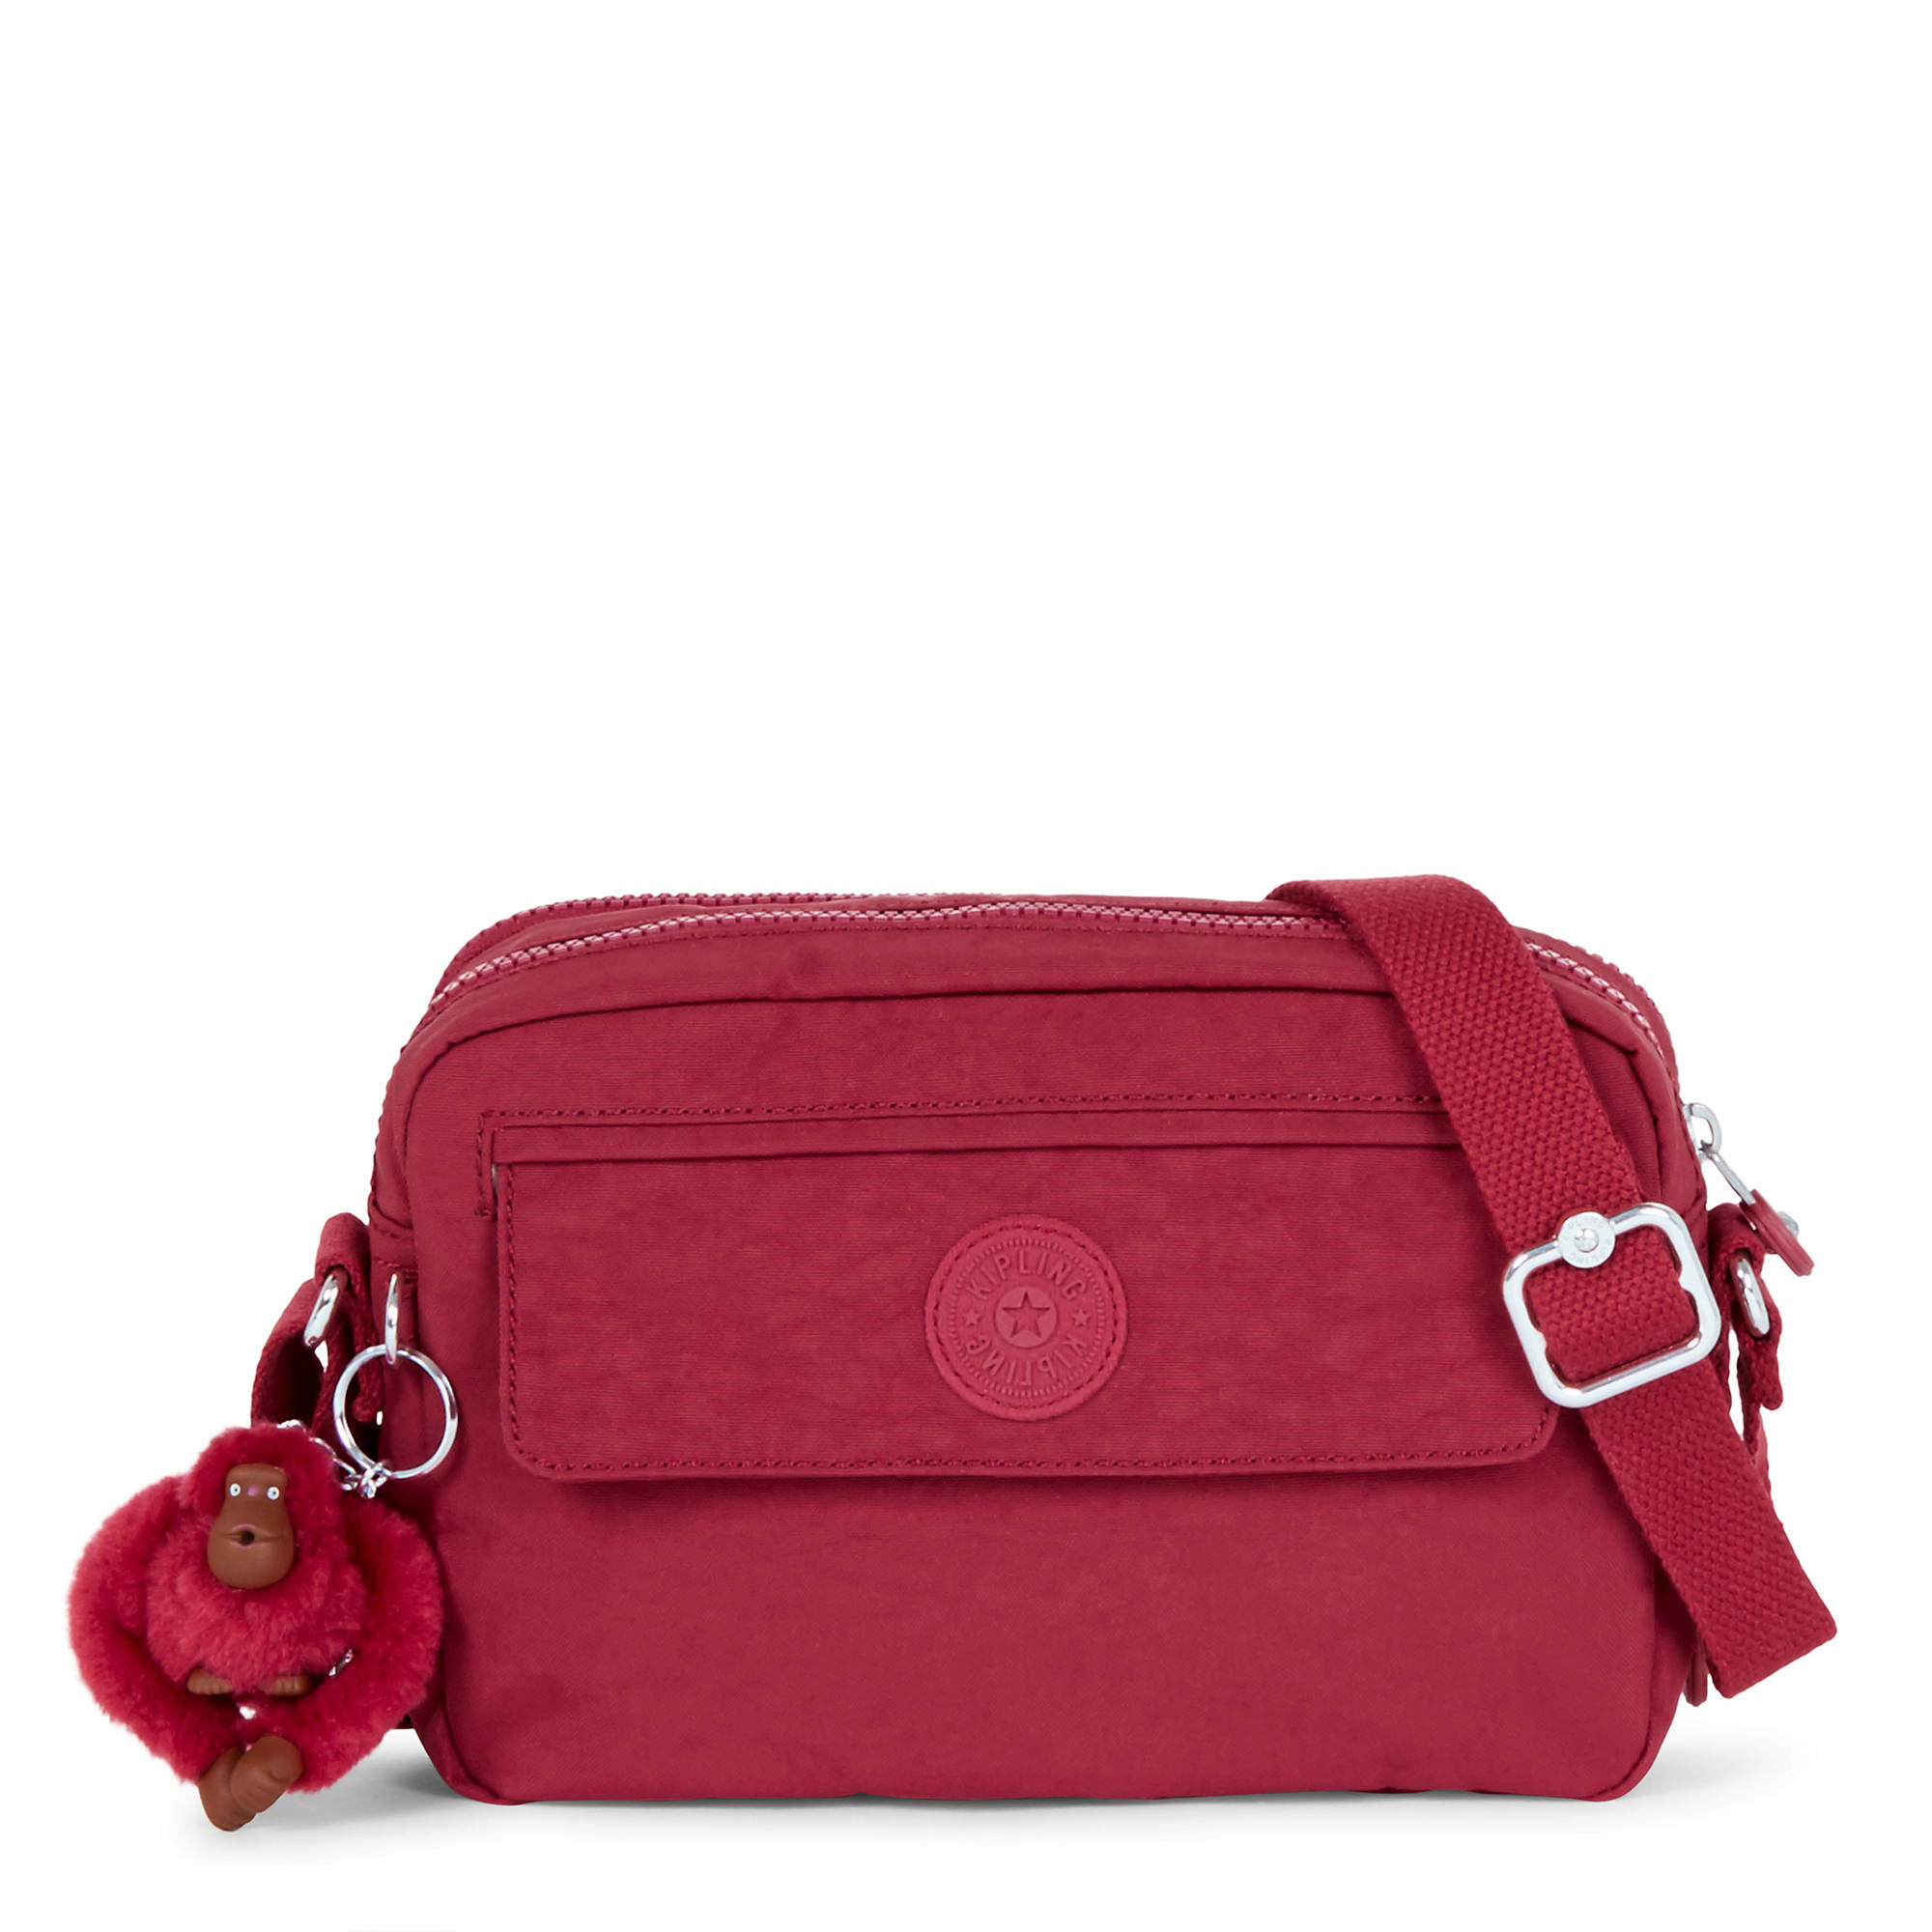 2834f577f9c Abbas Crossbody Bag,Candied Red,large